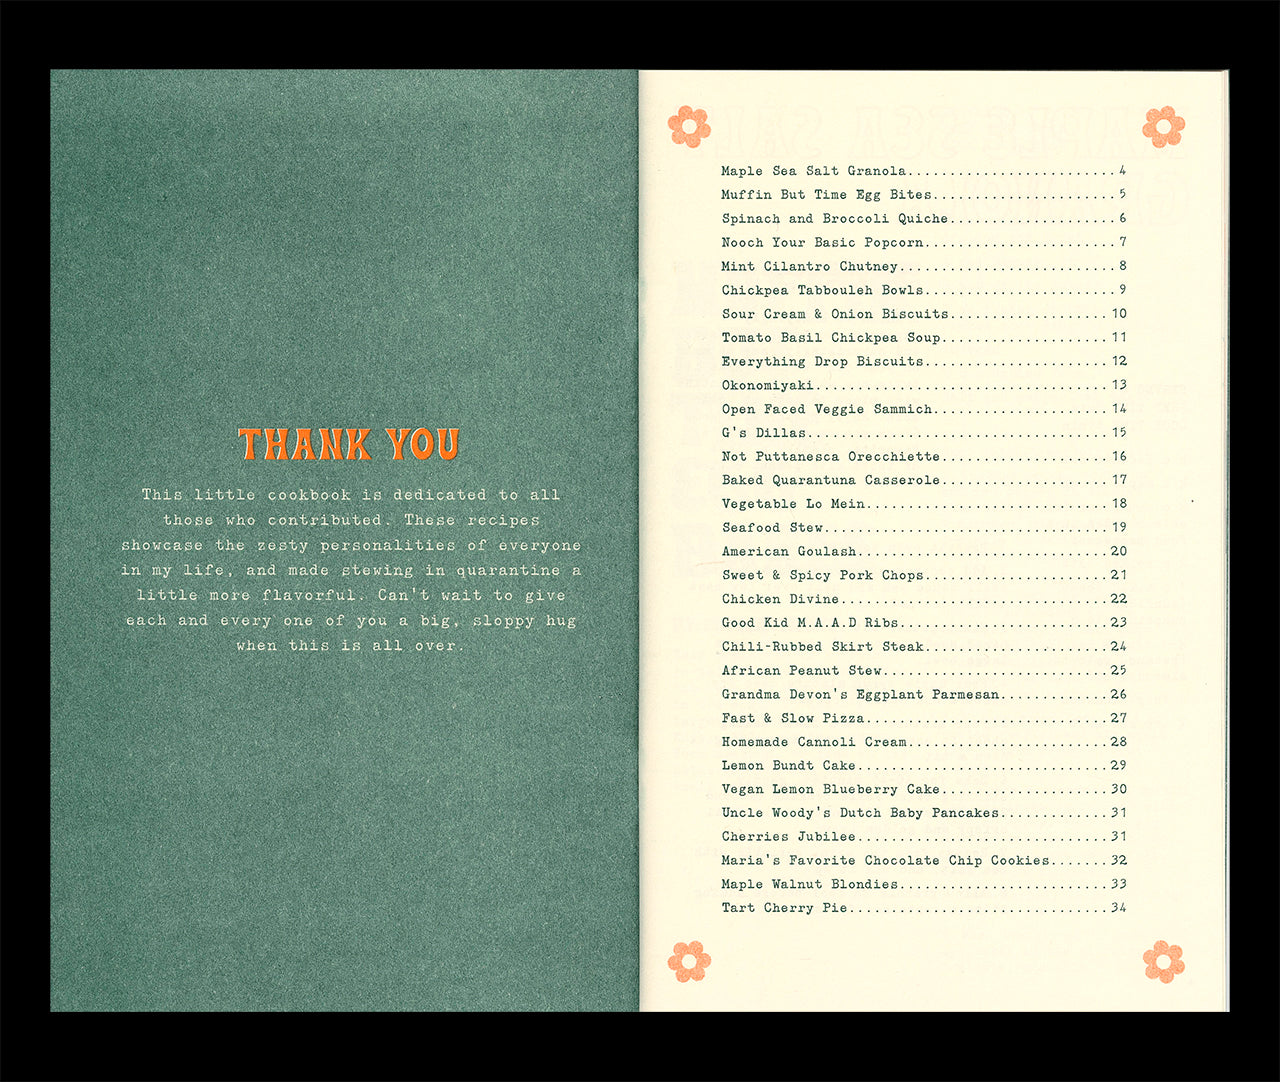 Quarantine Cookbook interior spread showing a thank you page and the table of contents